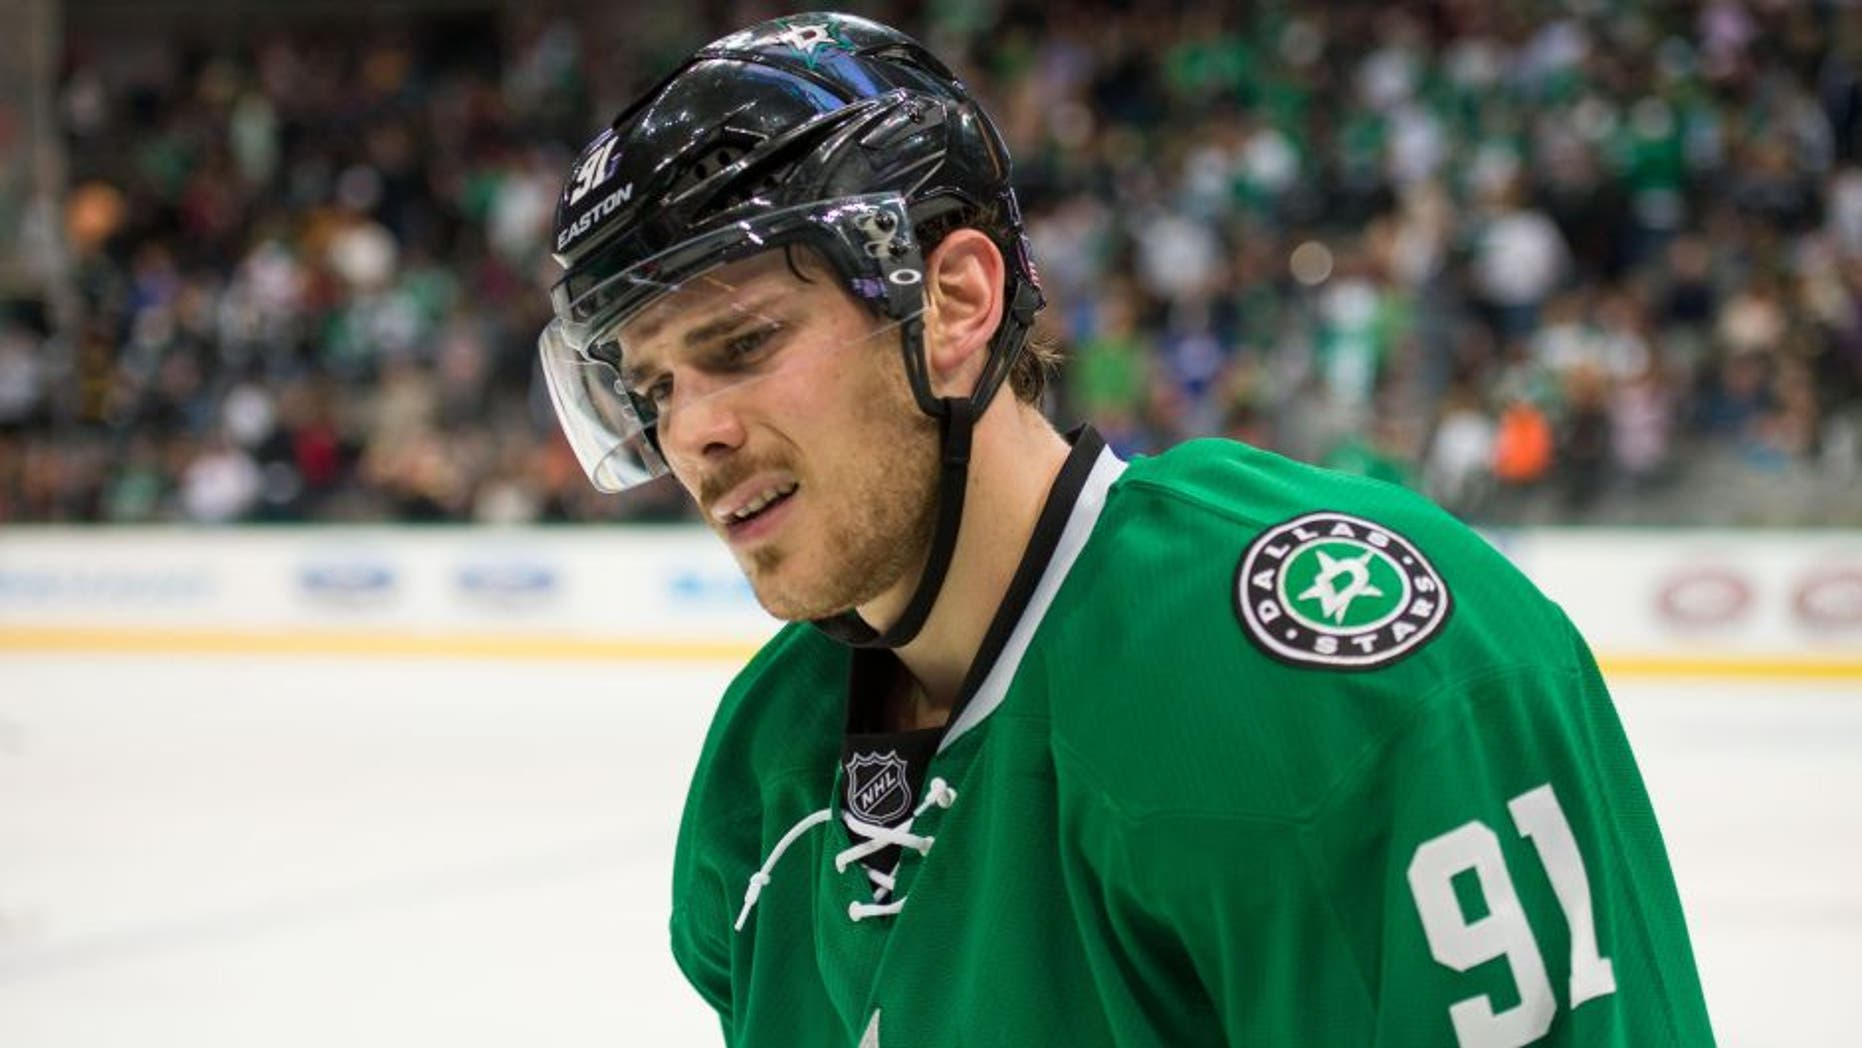 Nov 8, 2014; Dallas, TX, USA; Dallas Stars center Tyler Seguin (91) reacts to his team giving up the lead to the San Jose Sharks at the American Airlines Center. Seguin scores a hat trick. The Sharks defeated the Stars 5-3. Mandatory Credit: Jerome Miron-USA TODAY Sports